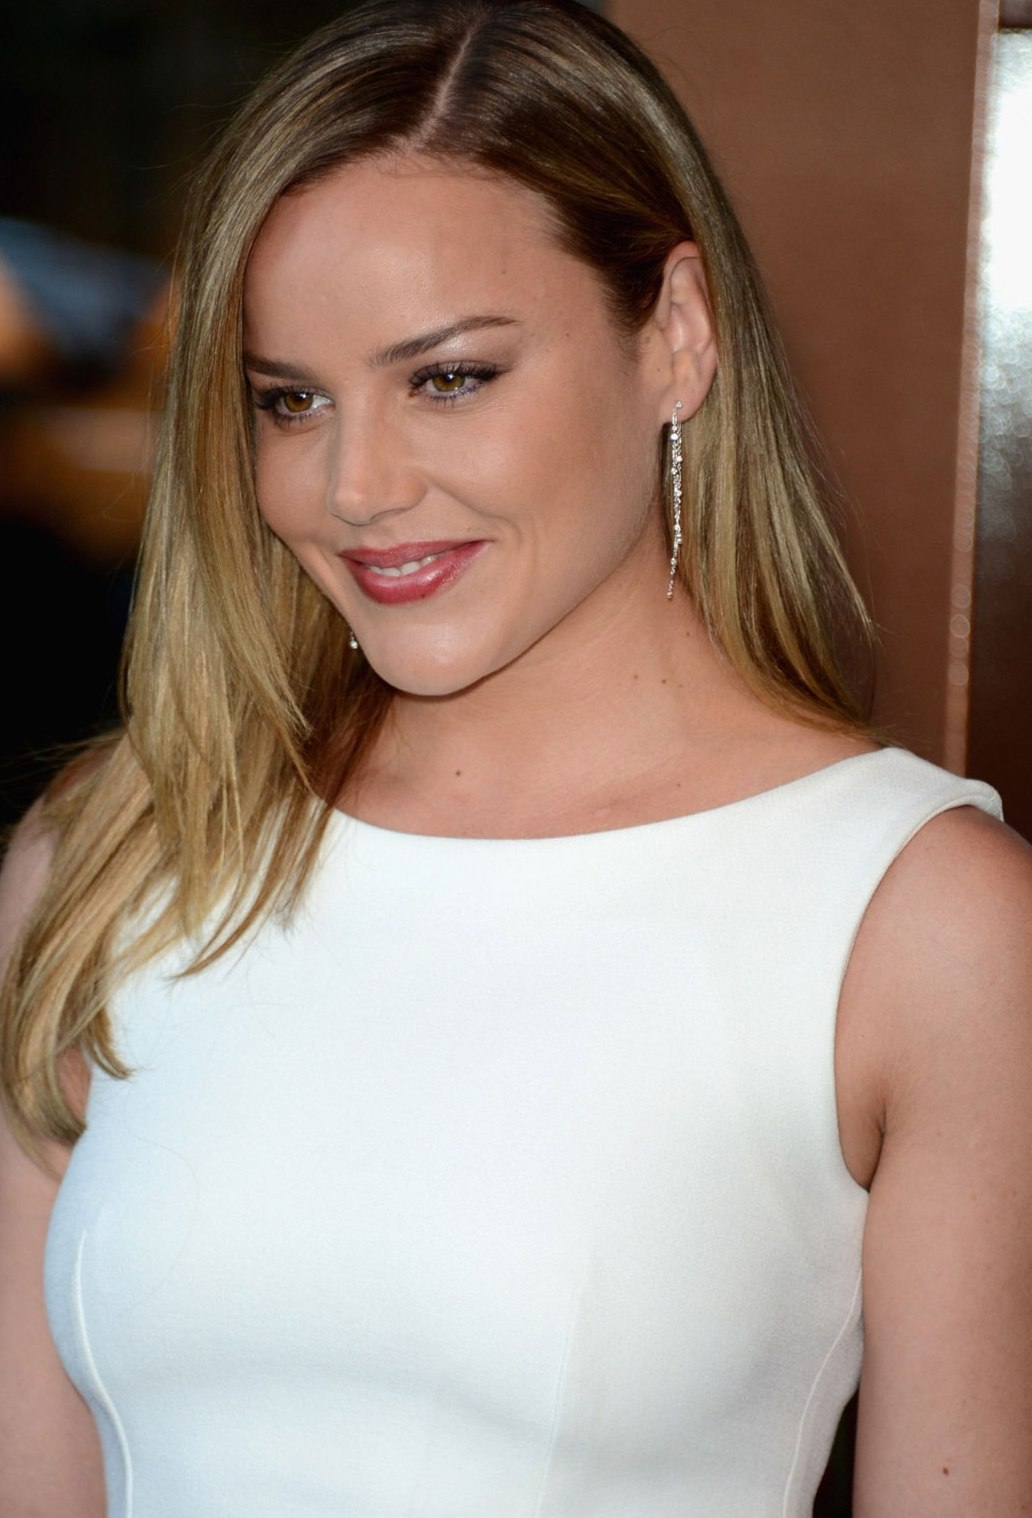 Celebrity Abbie Cornish nudes (76 foto and video), Sexy, Paparazzi, Selfie, braless 2018